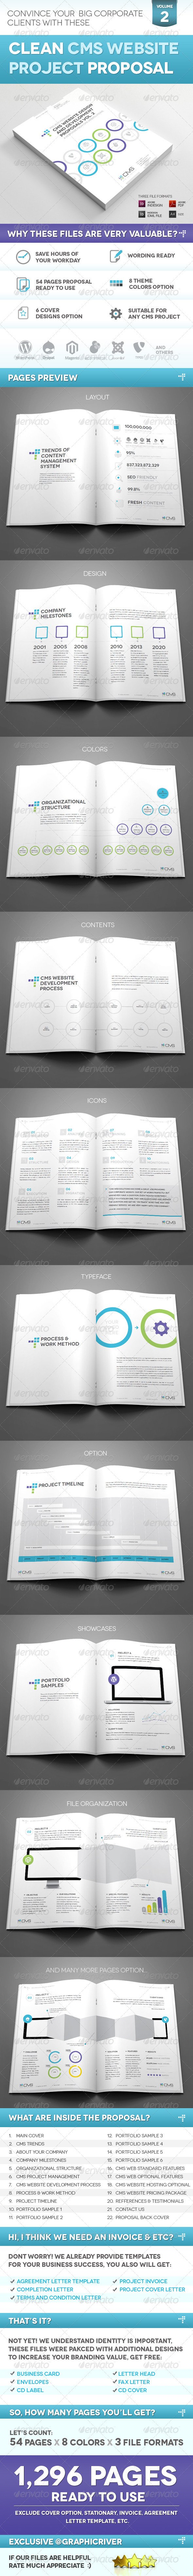 GraphicRiver Clean CMS Web Proposal Vol 2 4411305